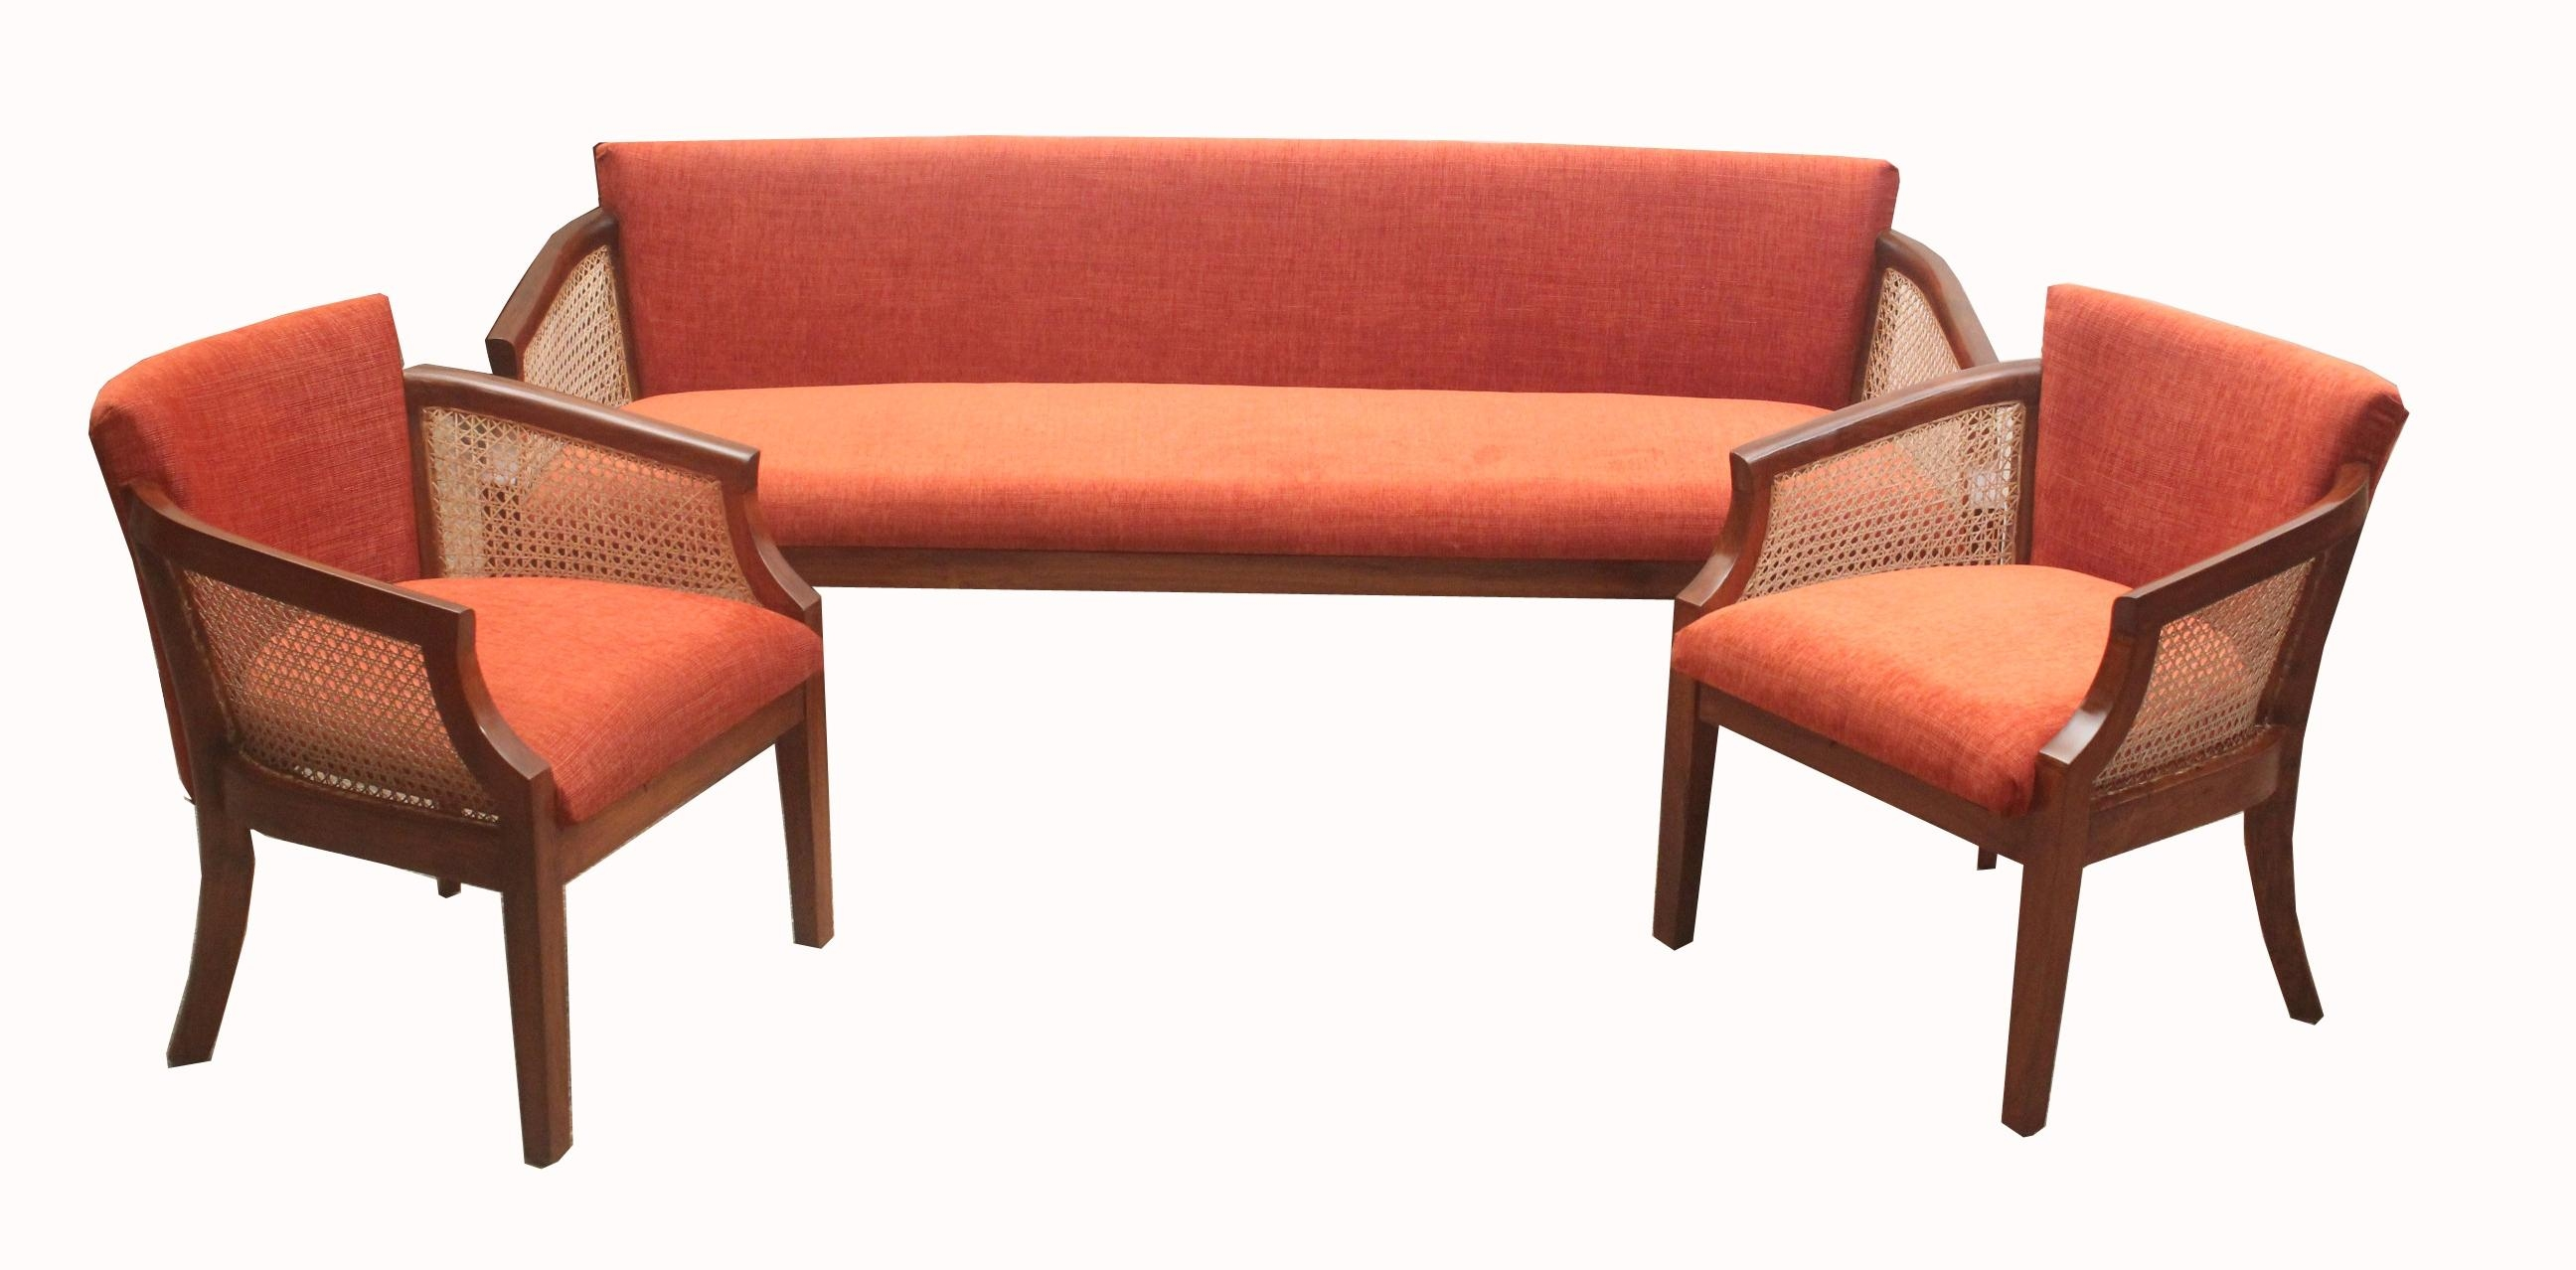 Cane Sofa Set With Inspiration Design 46956 | Kengire Throughout Ken Sofa Sets (Image 13 of 20)